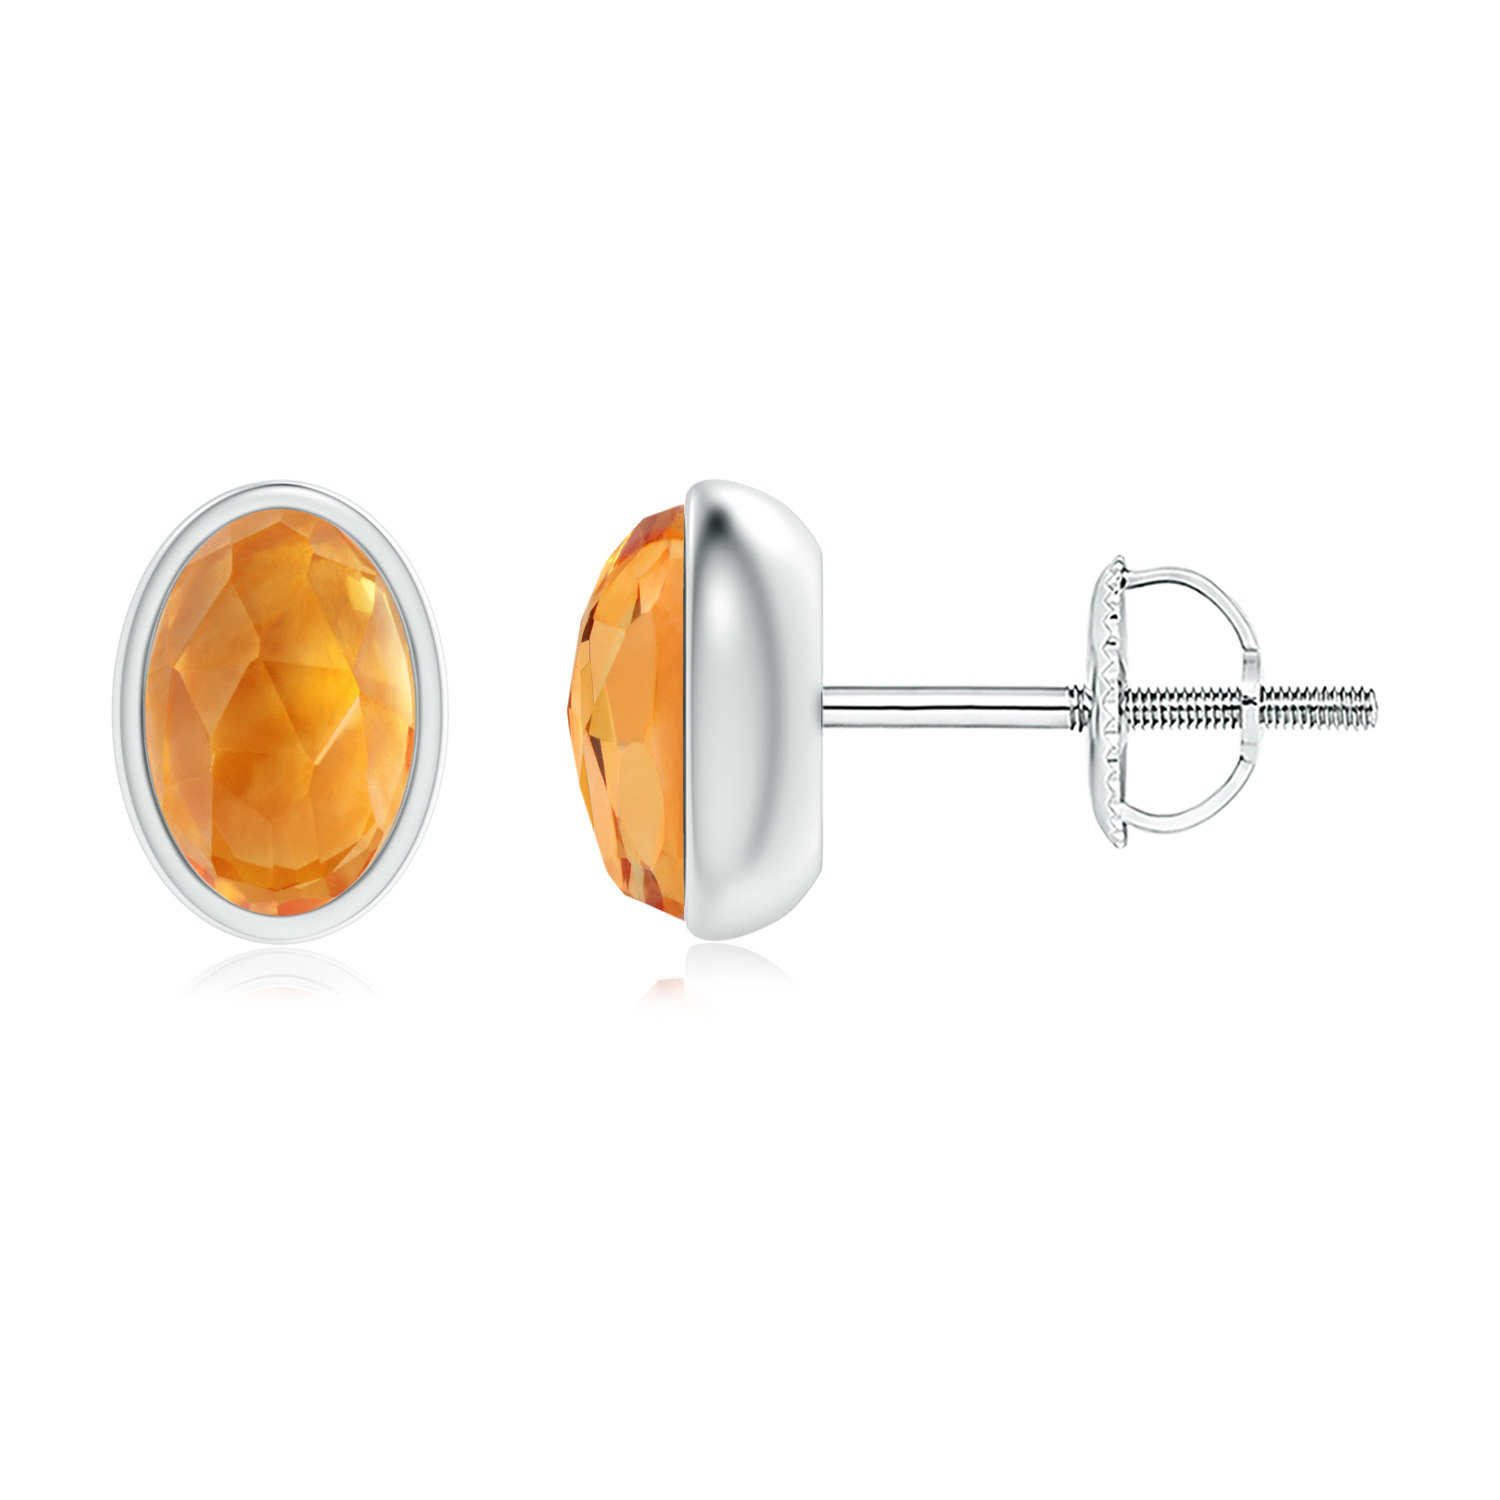 Mother's Day Jewelry Bezel Set Oval Citrine Solitaire Stud Earrings in .925 Sterling Silver SE1502CT-SL-AAA-6x4 by Angara.com